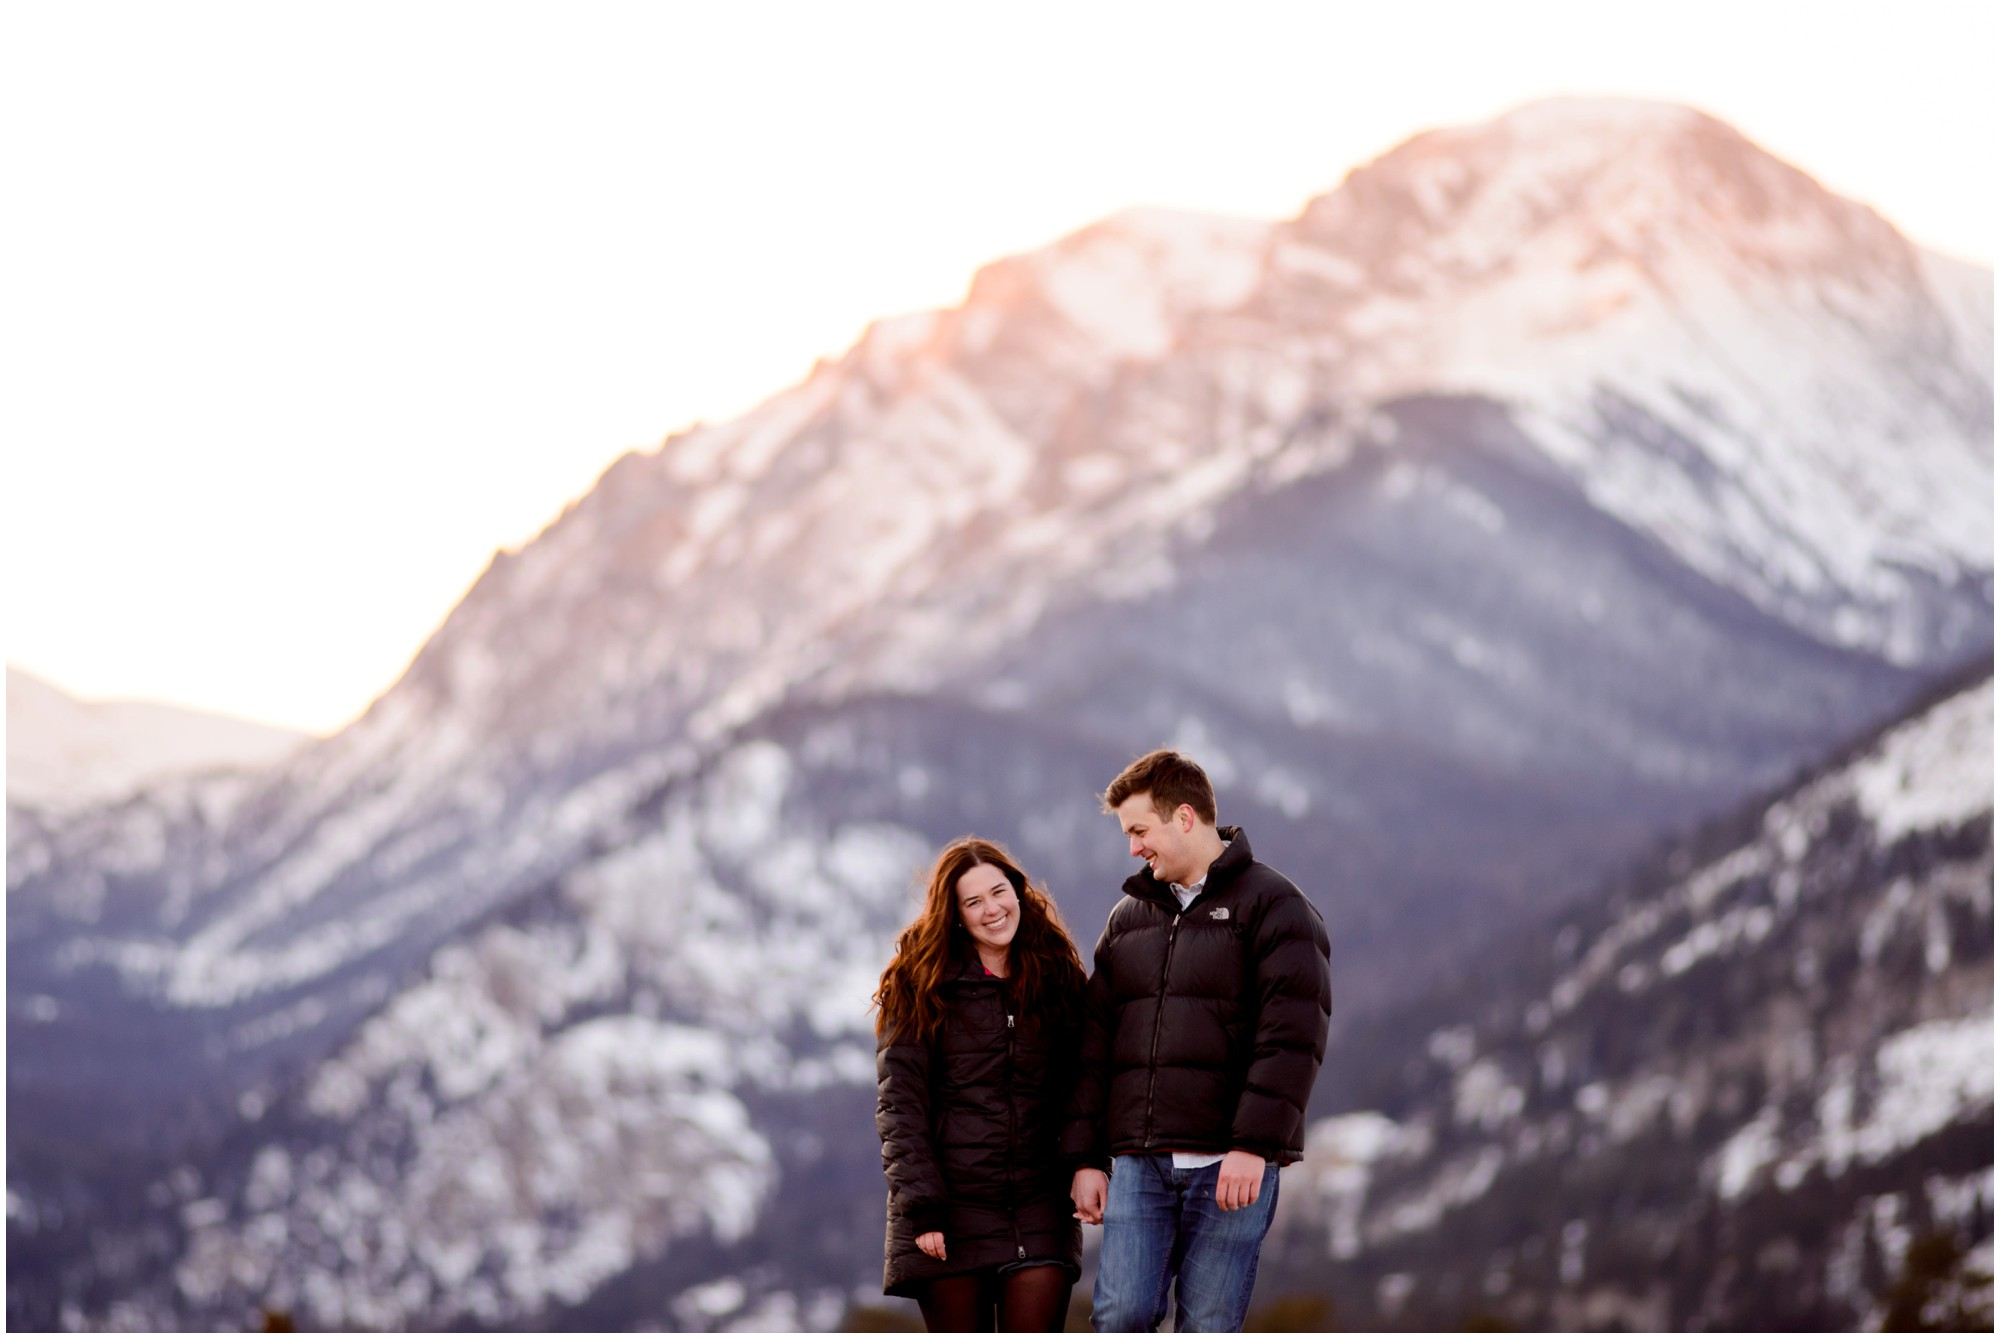 187-Rocky-mountain-national-park-engagement-photos.jpg